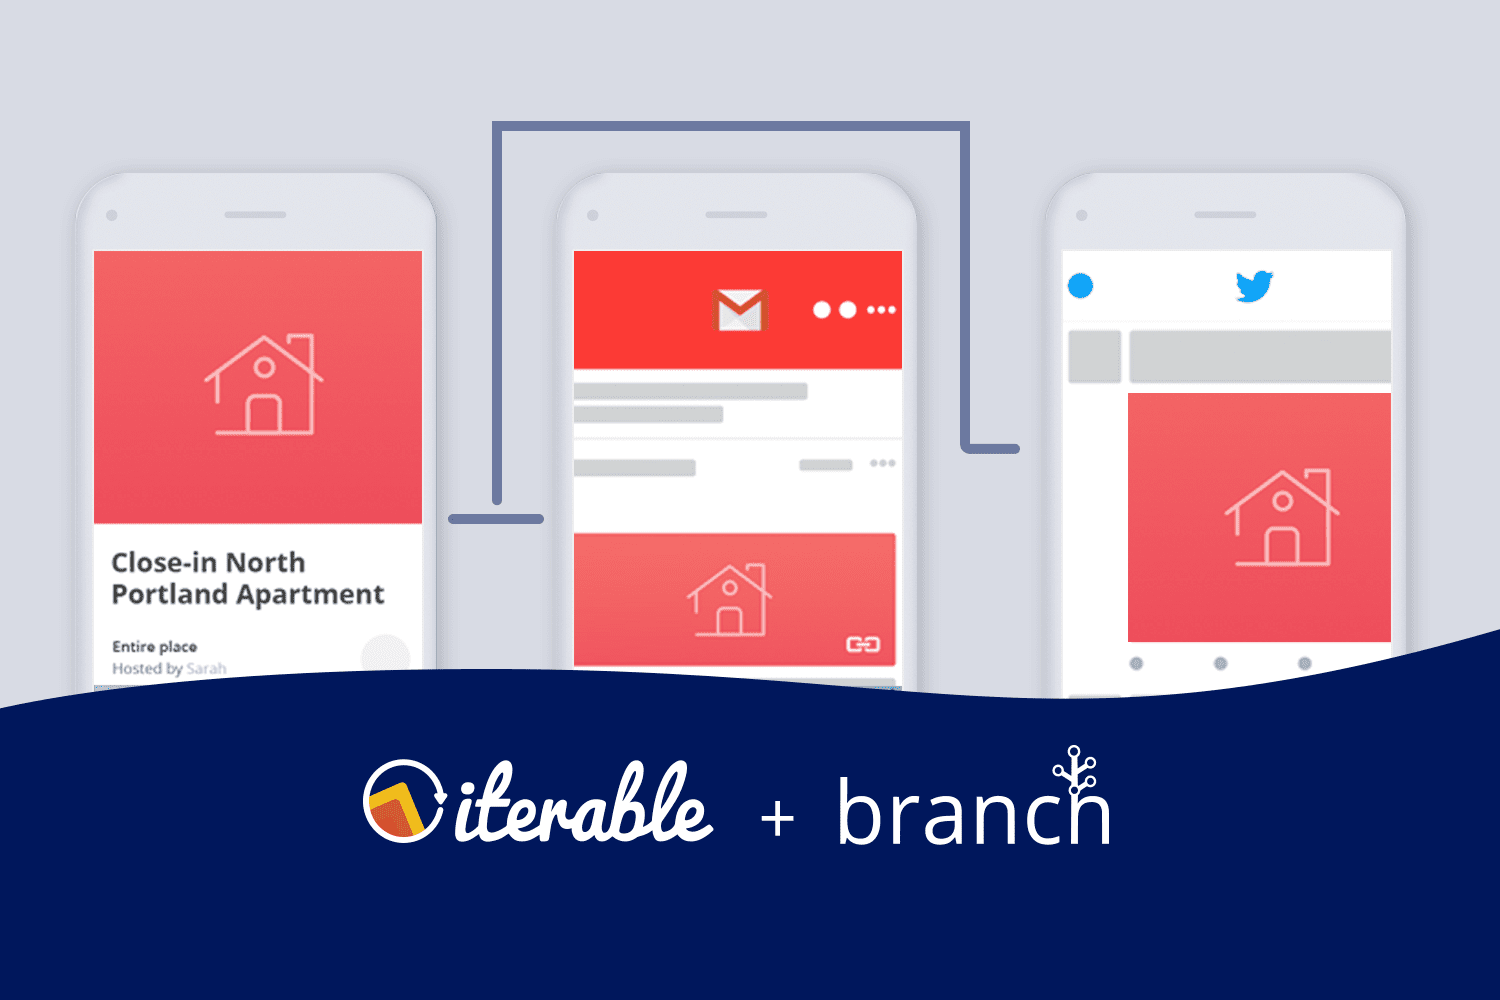 Iterable + Branch illustration depicting mobile deep linking